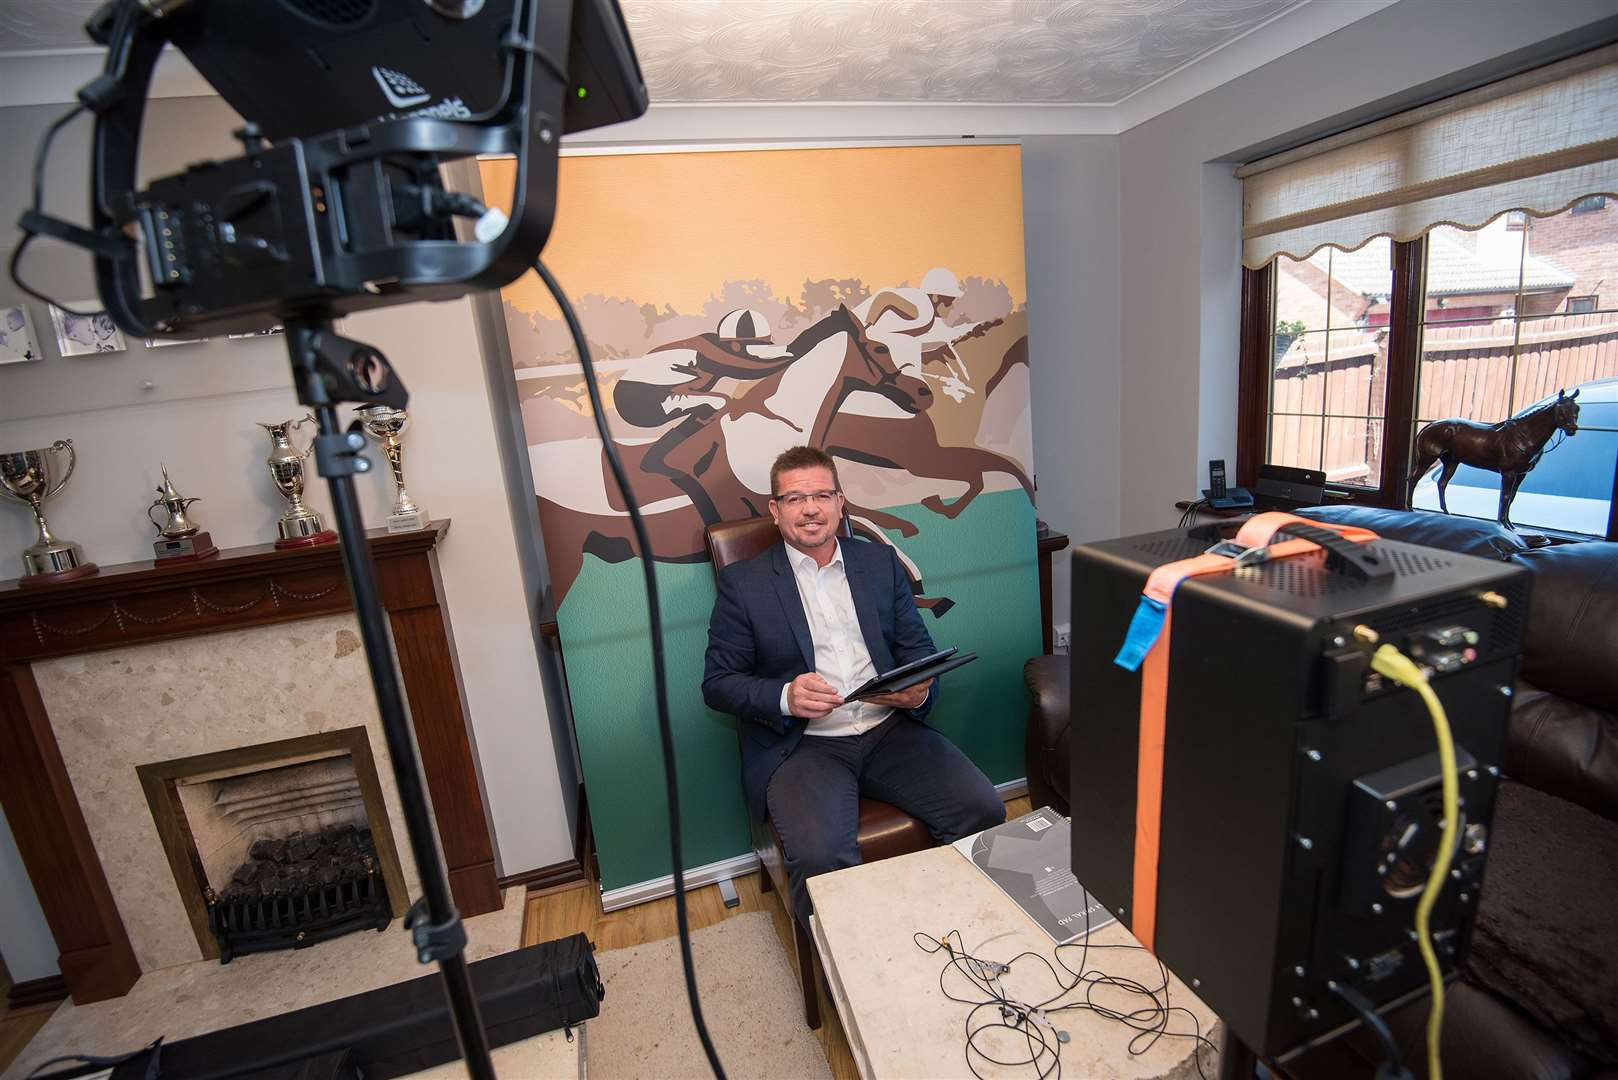 Newmarket. ITV Racing's Jason Weaver created a studio in his home to present racing when it returns to ITV in early June. Picture by Mark Westley. (34926503)